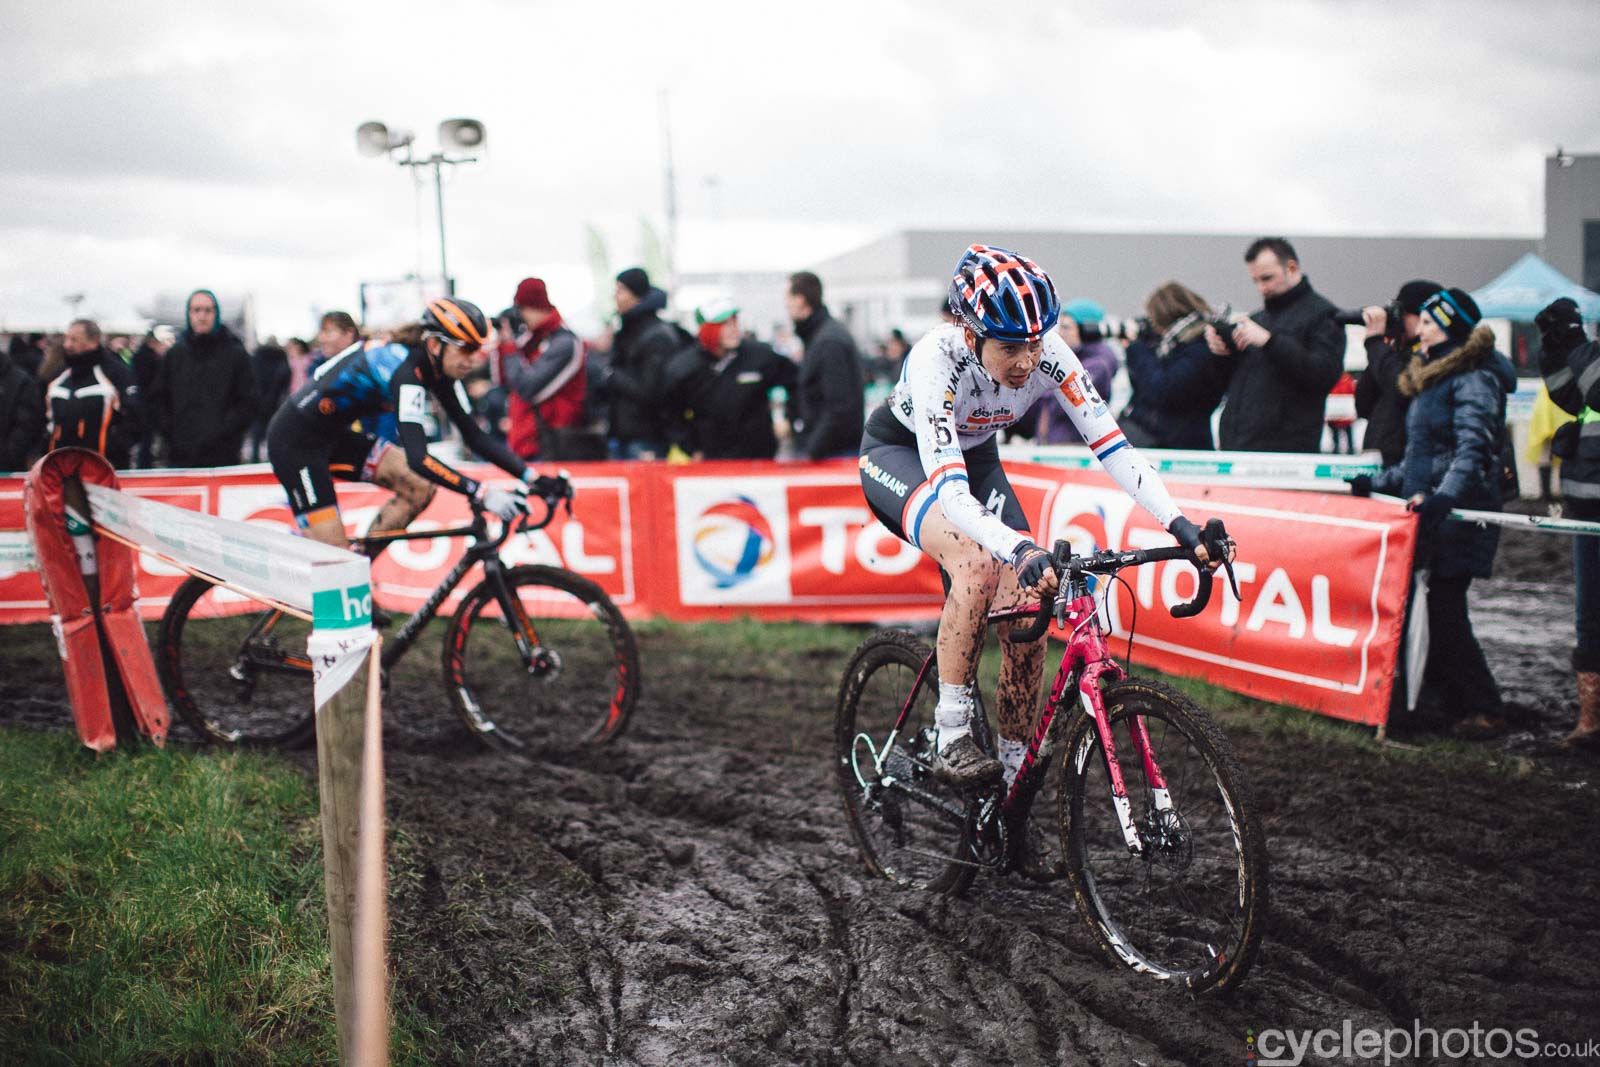 2016-cyclephotos-cyclocross-hoogstraten-135035-nikki-harris